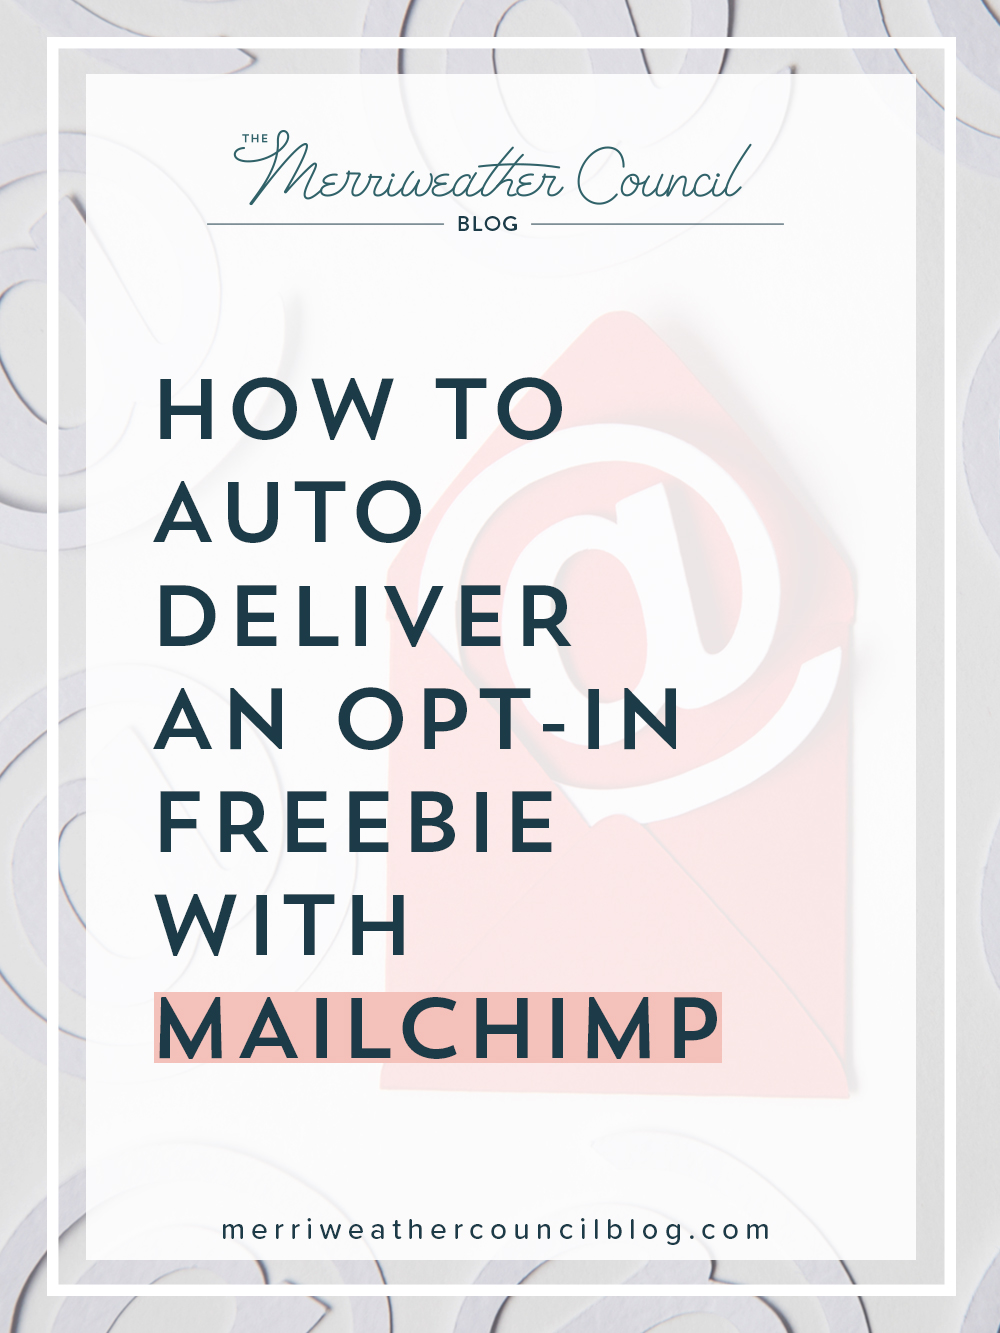 use mail chimp's free plan to automatically deliver an to in incentive - a video lesson ! | The merriweather council blog